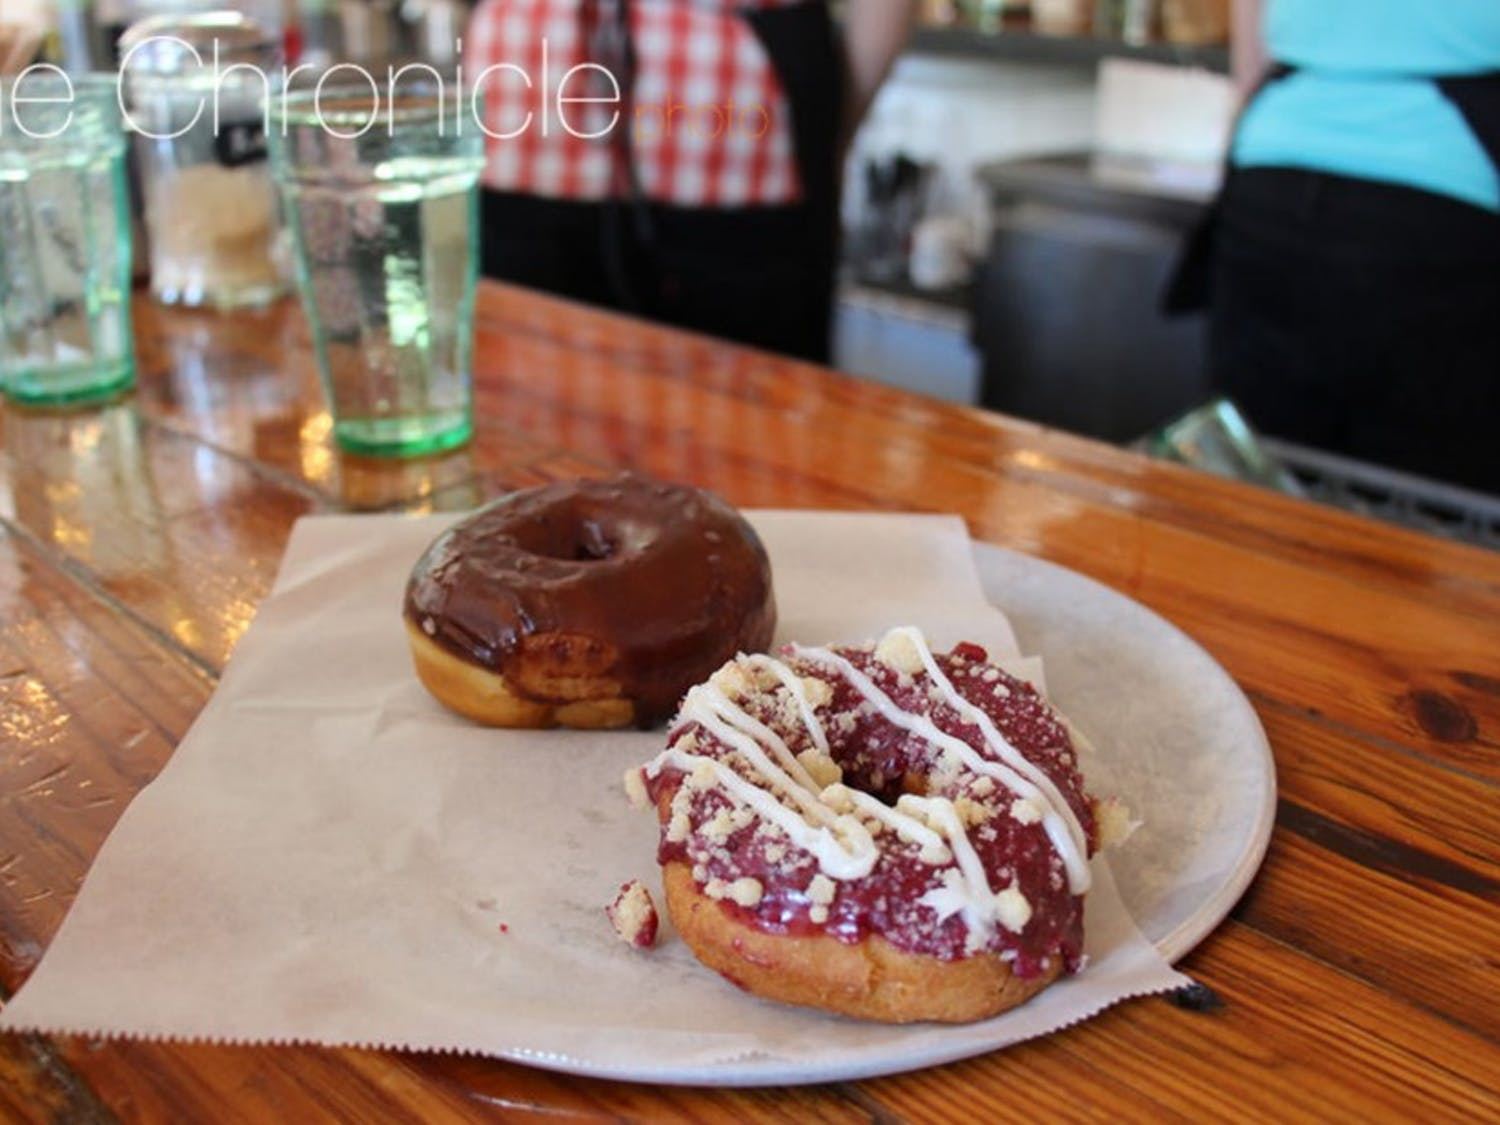 Monuts donuts bring together young and old, Tarheel and Blue Devil, for a scrumptioustreat.